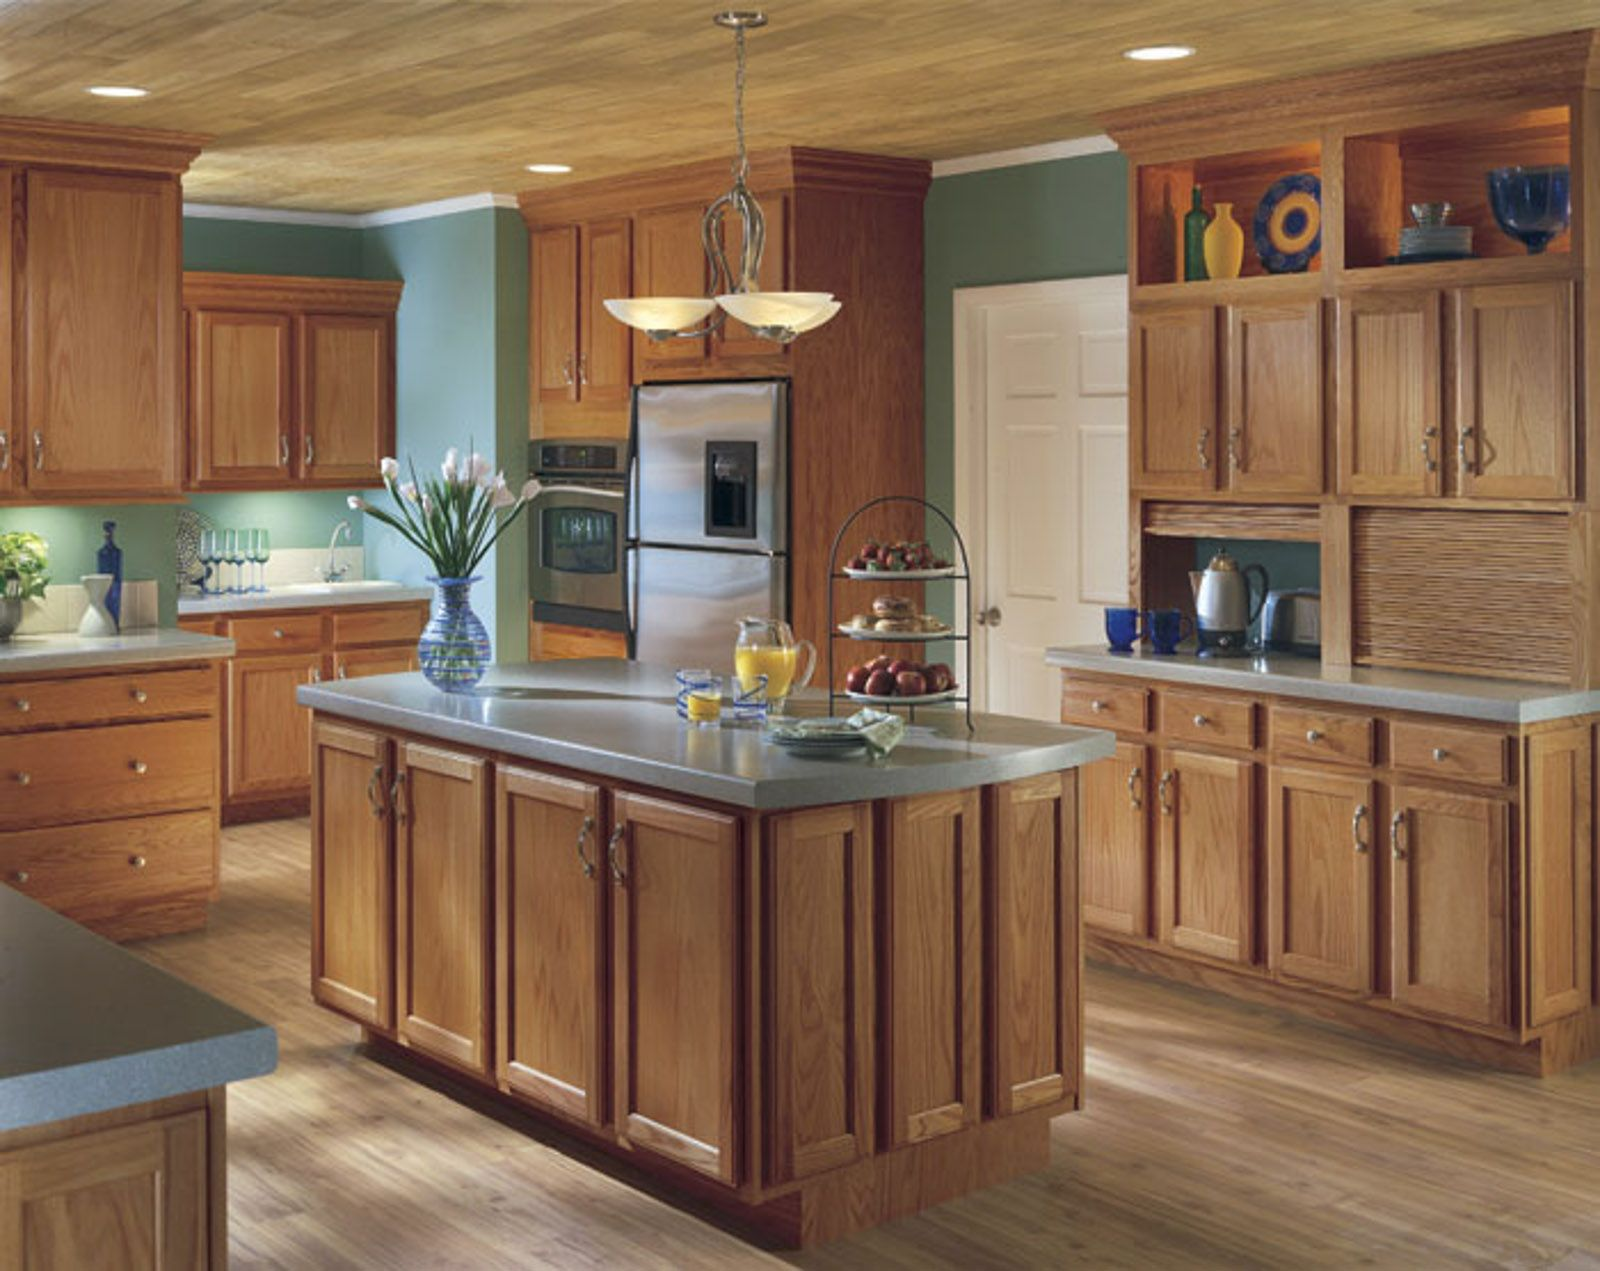 Best Benton Style Cabinets From Echelon Are Gorgeous In This 400 x 300